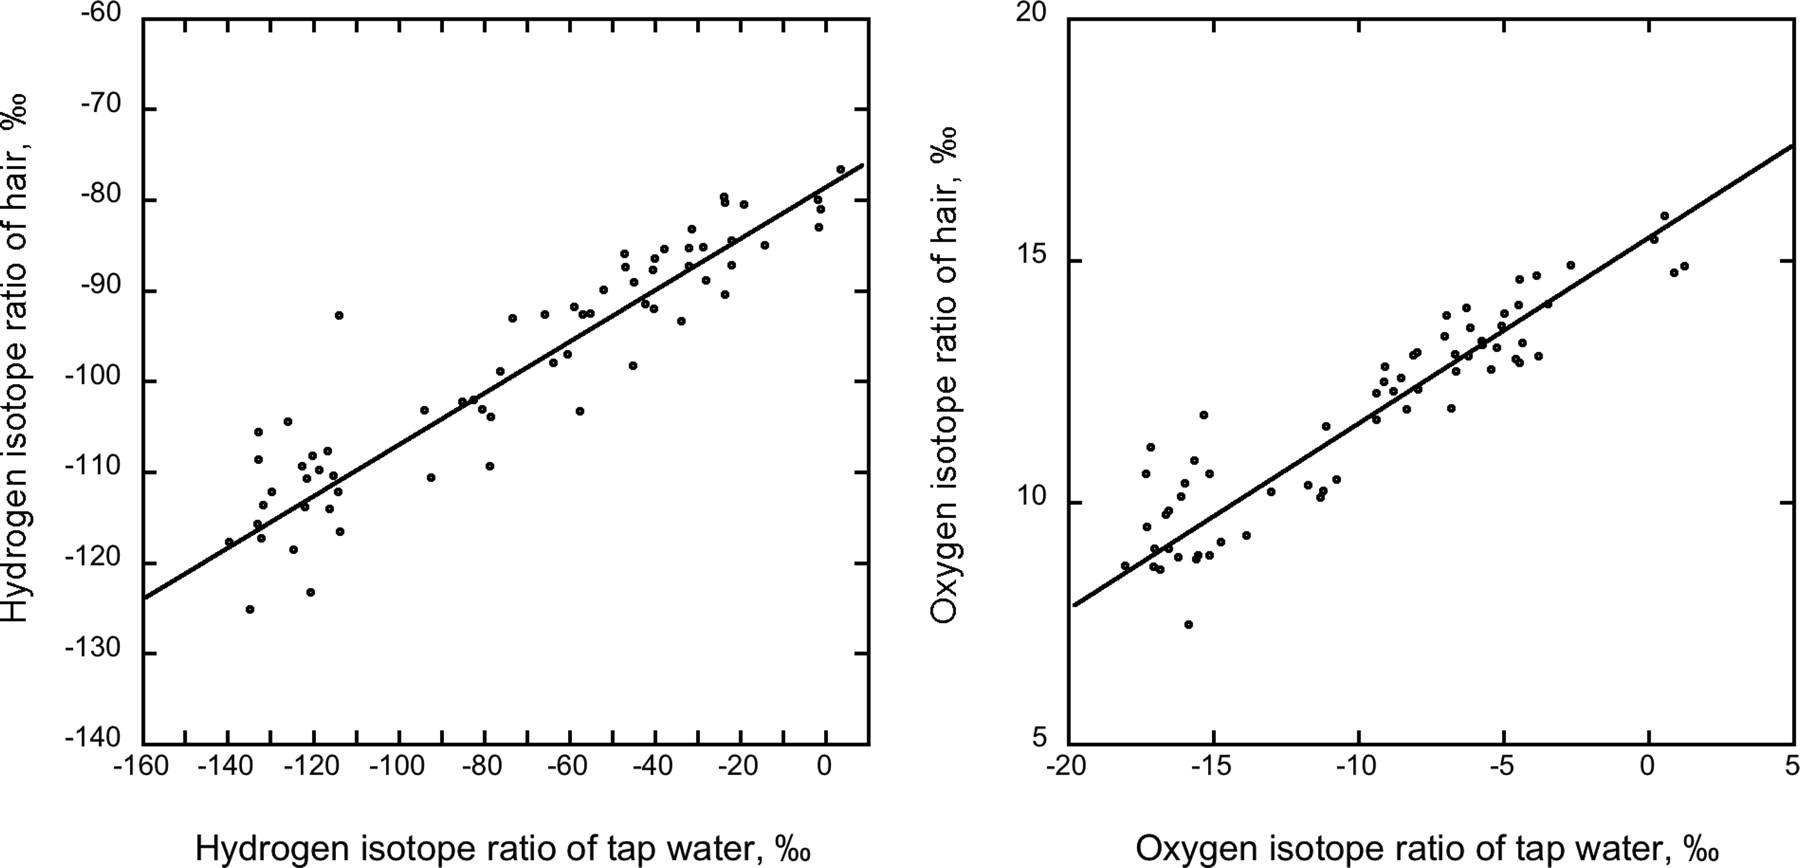 Plots of the relationships between mean H isotope ratios and mean O isotope ratios of human scalp hair and tap water for samples randomly acquired in cities representing 18 states across the United States.